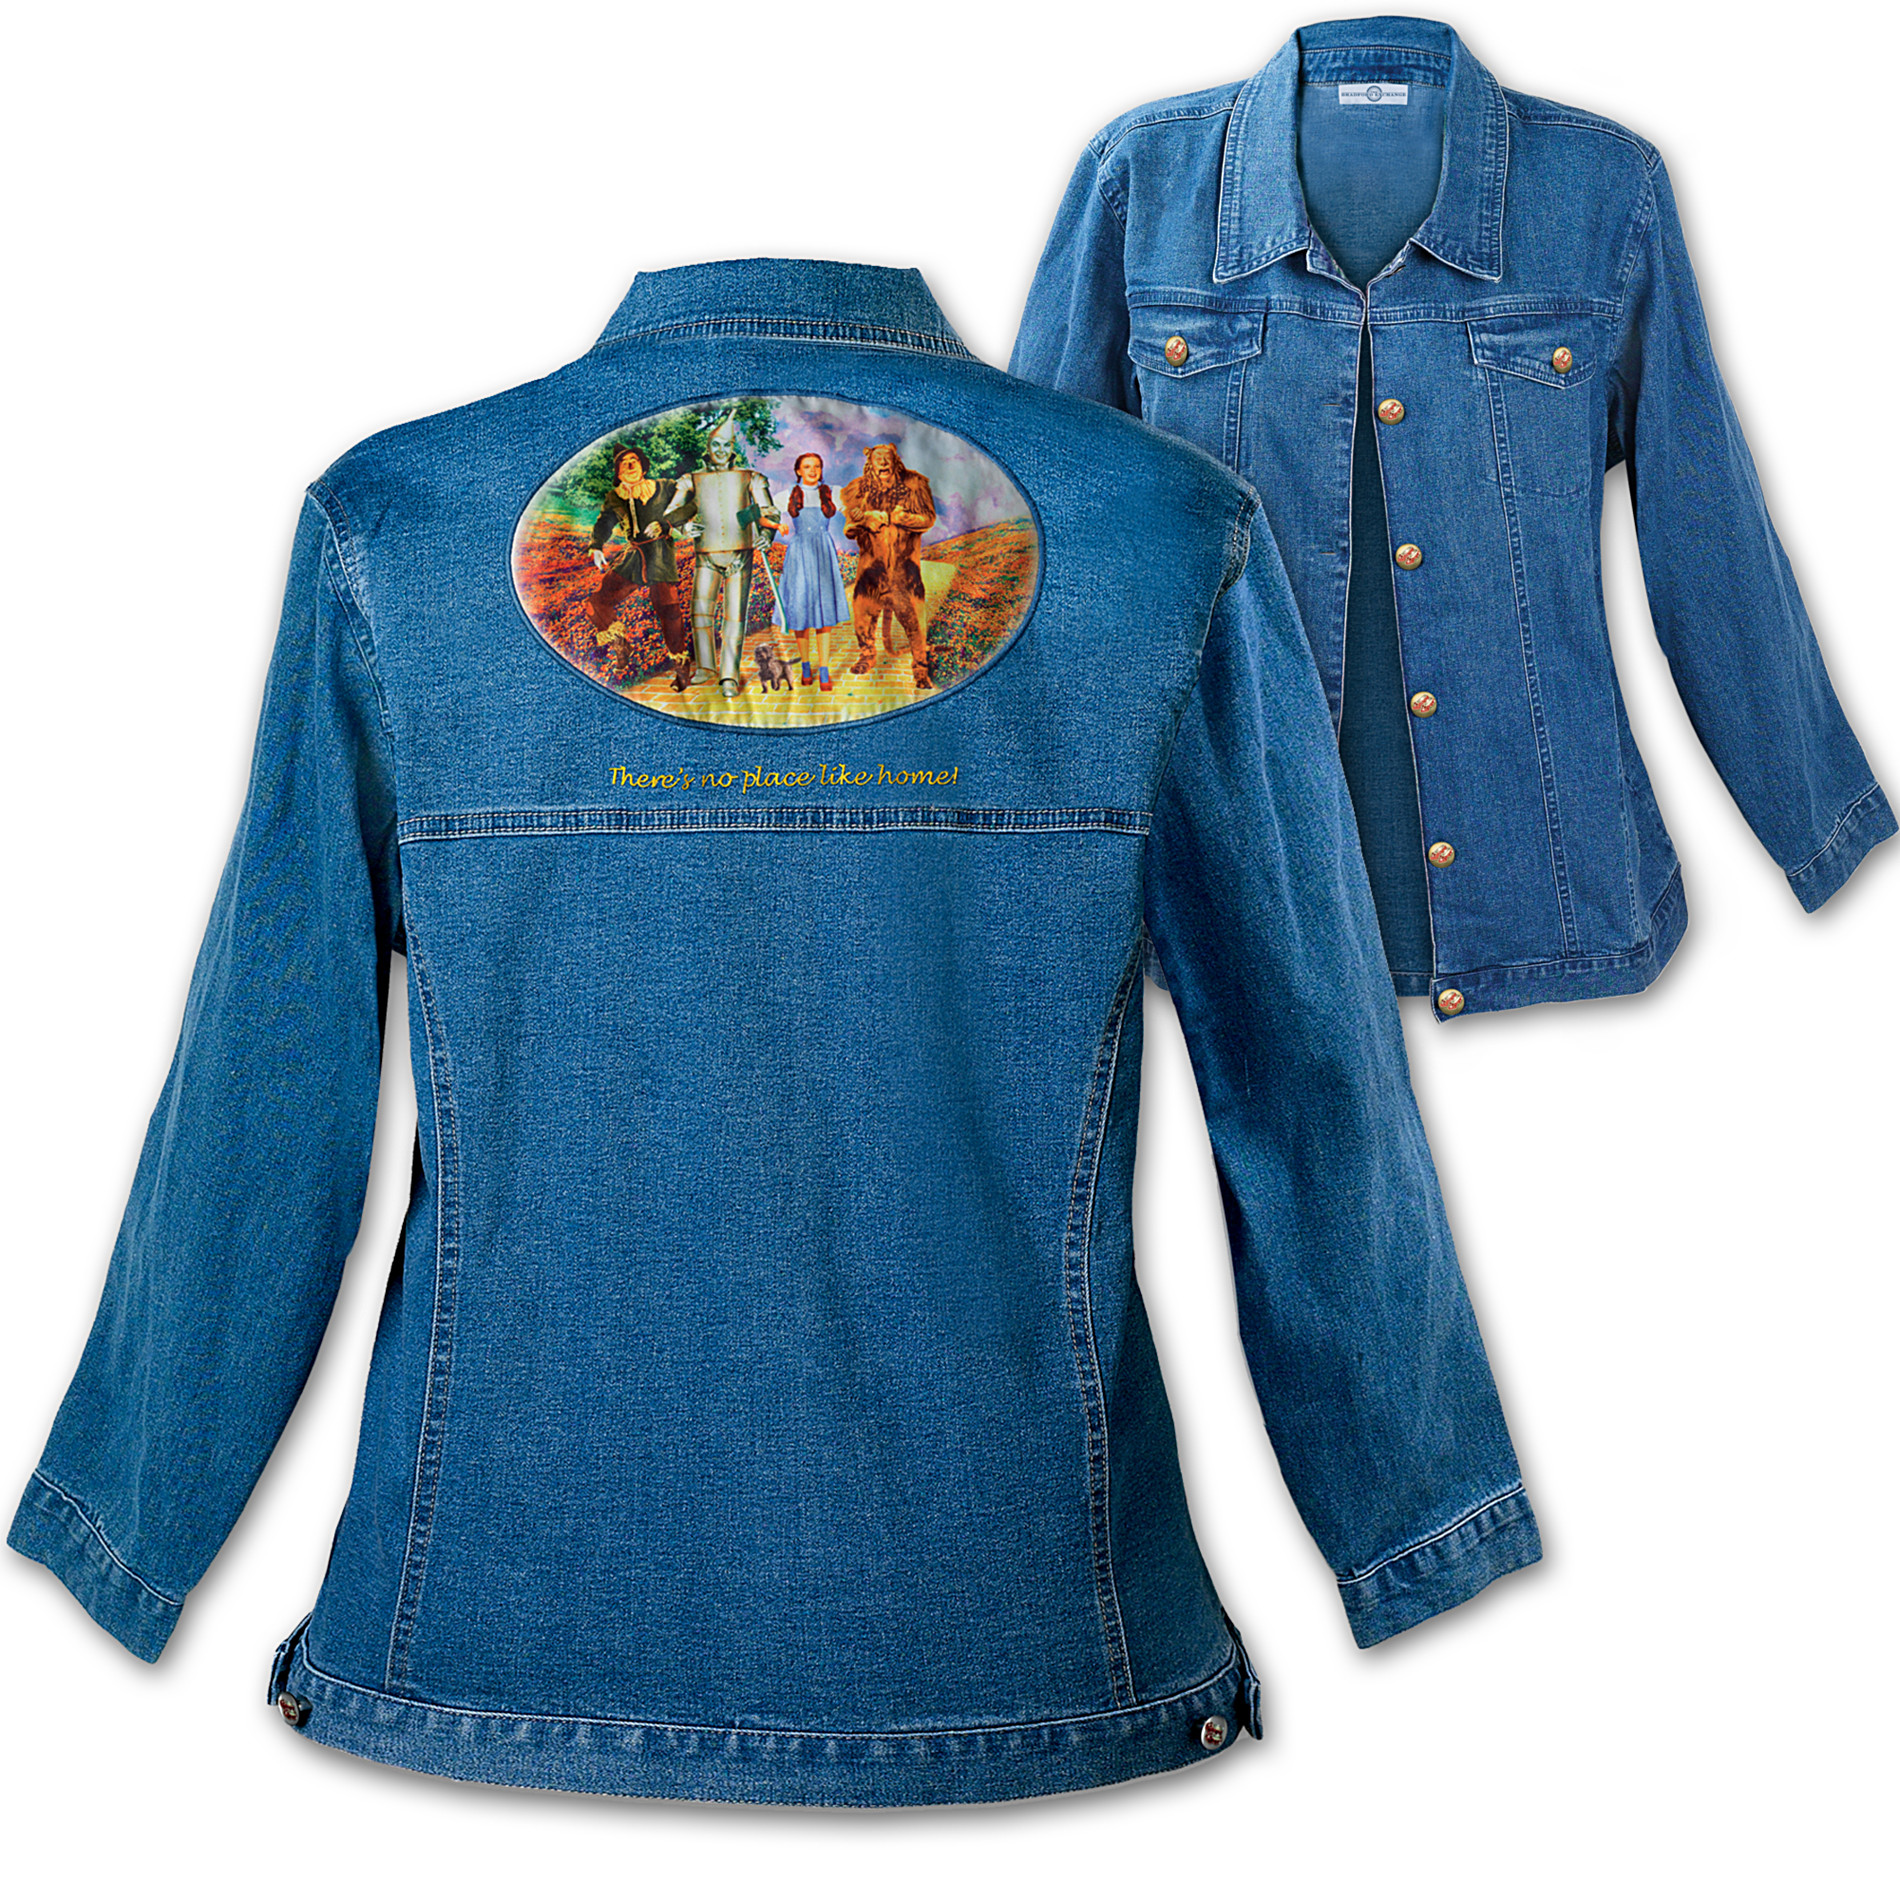 The Bradford Exchange Wizard Of Oz Women's Denim Art Jacket at Sears.com